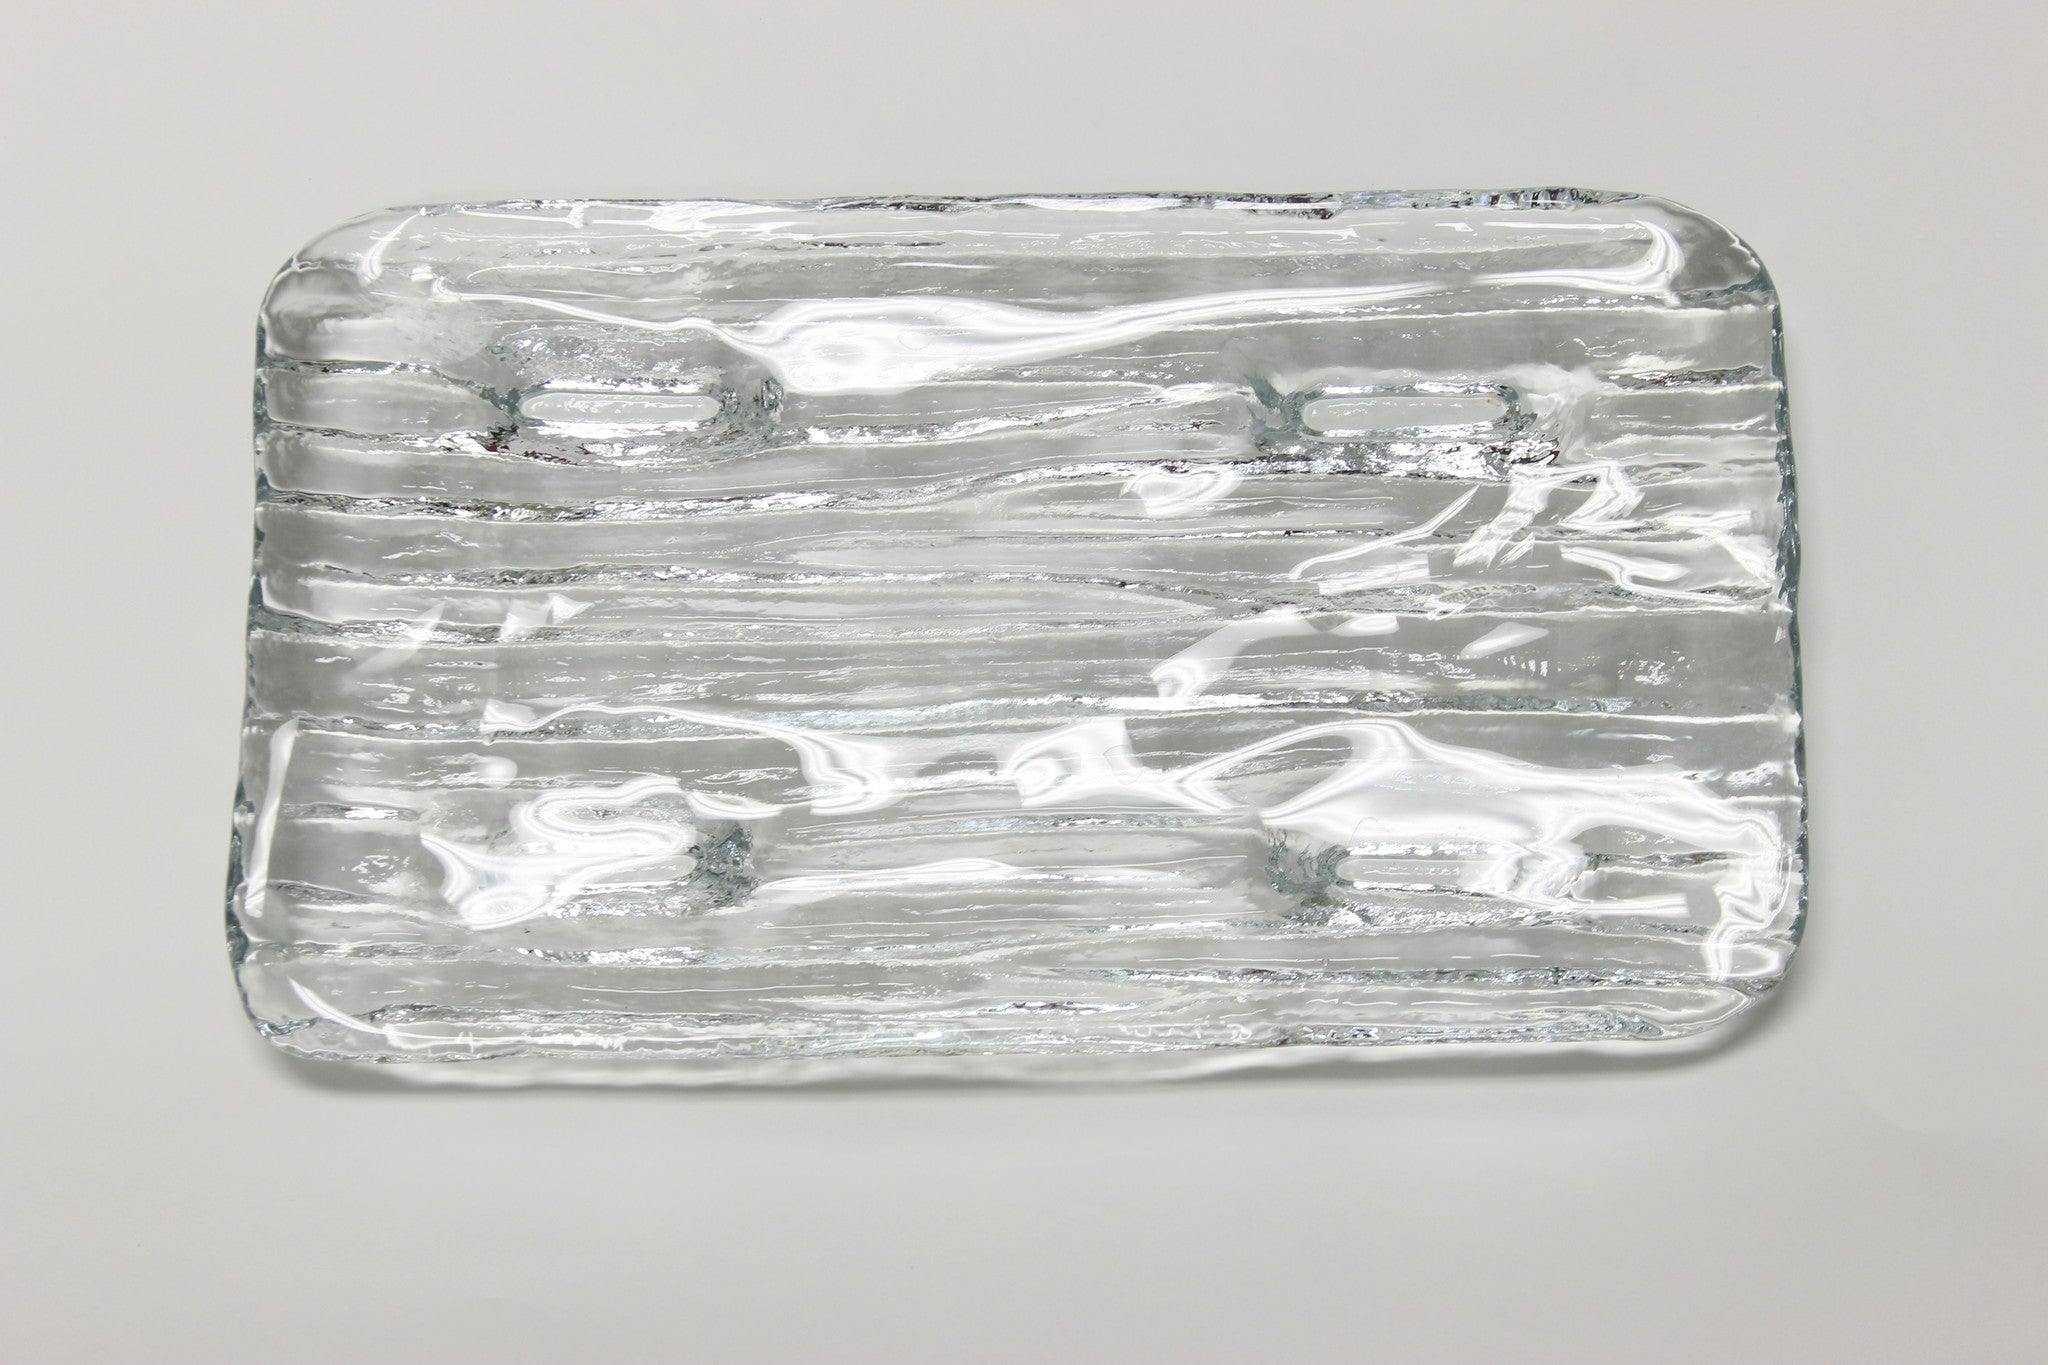 Glass Ribbed Serving Dish - Carleton Varney